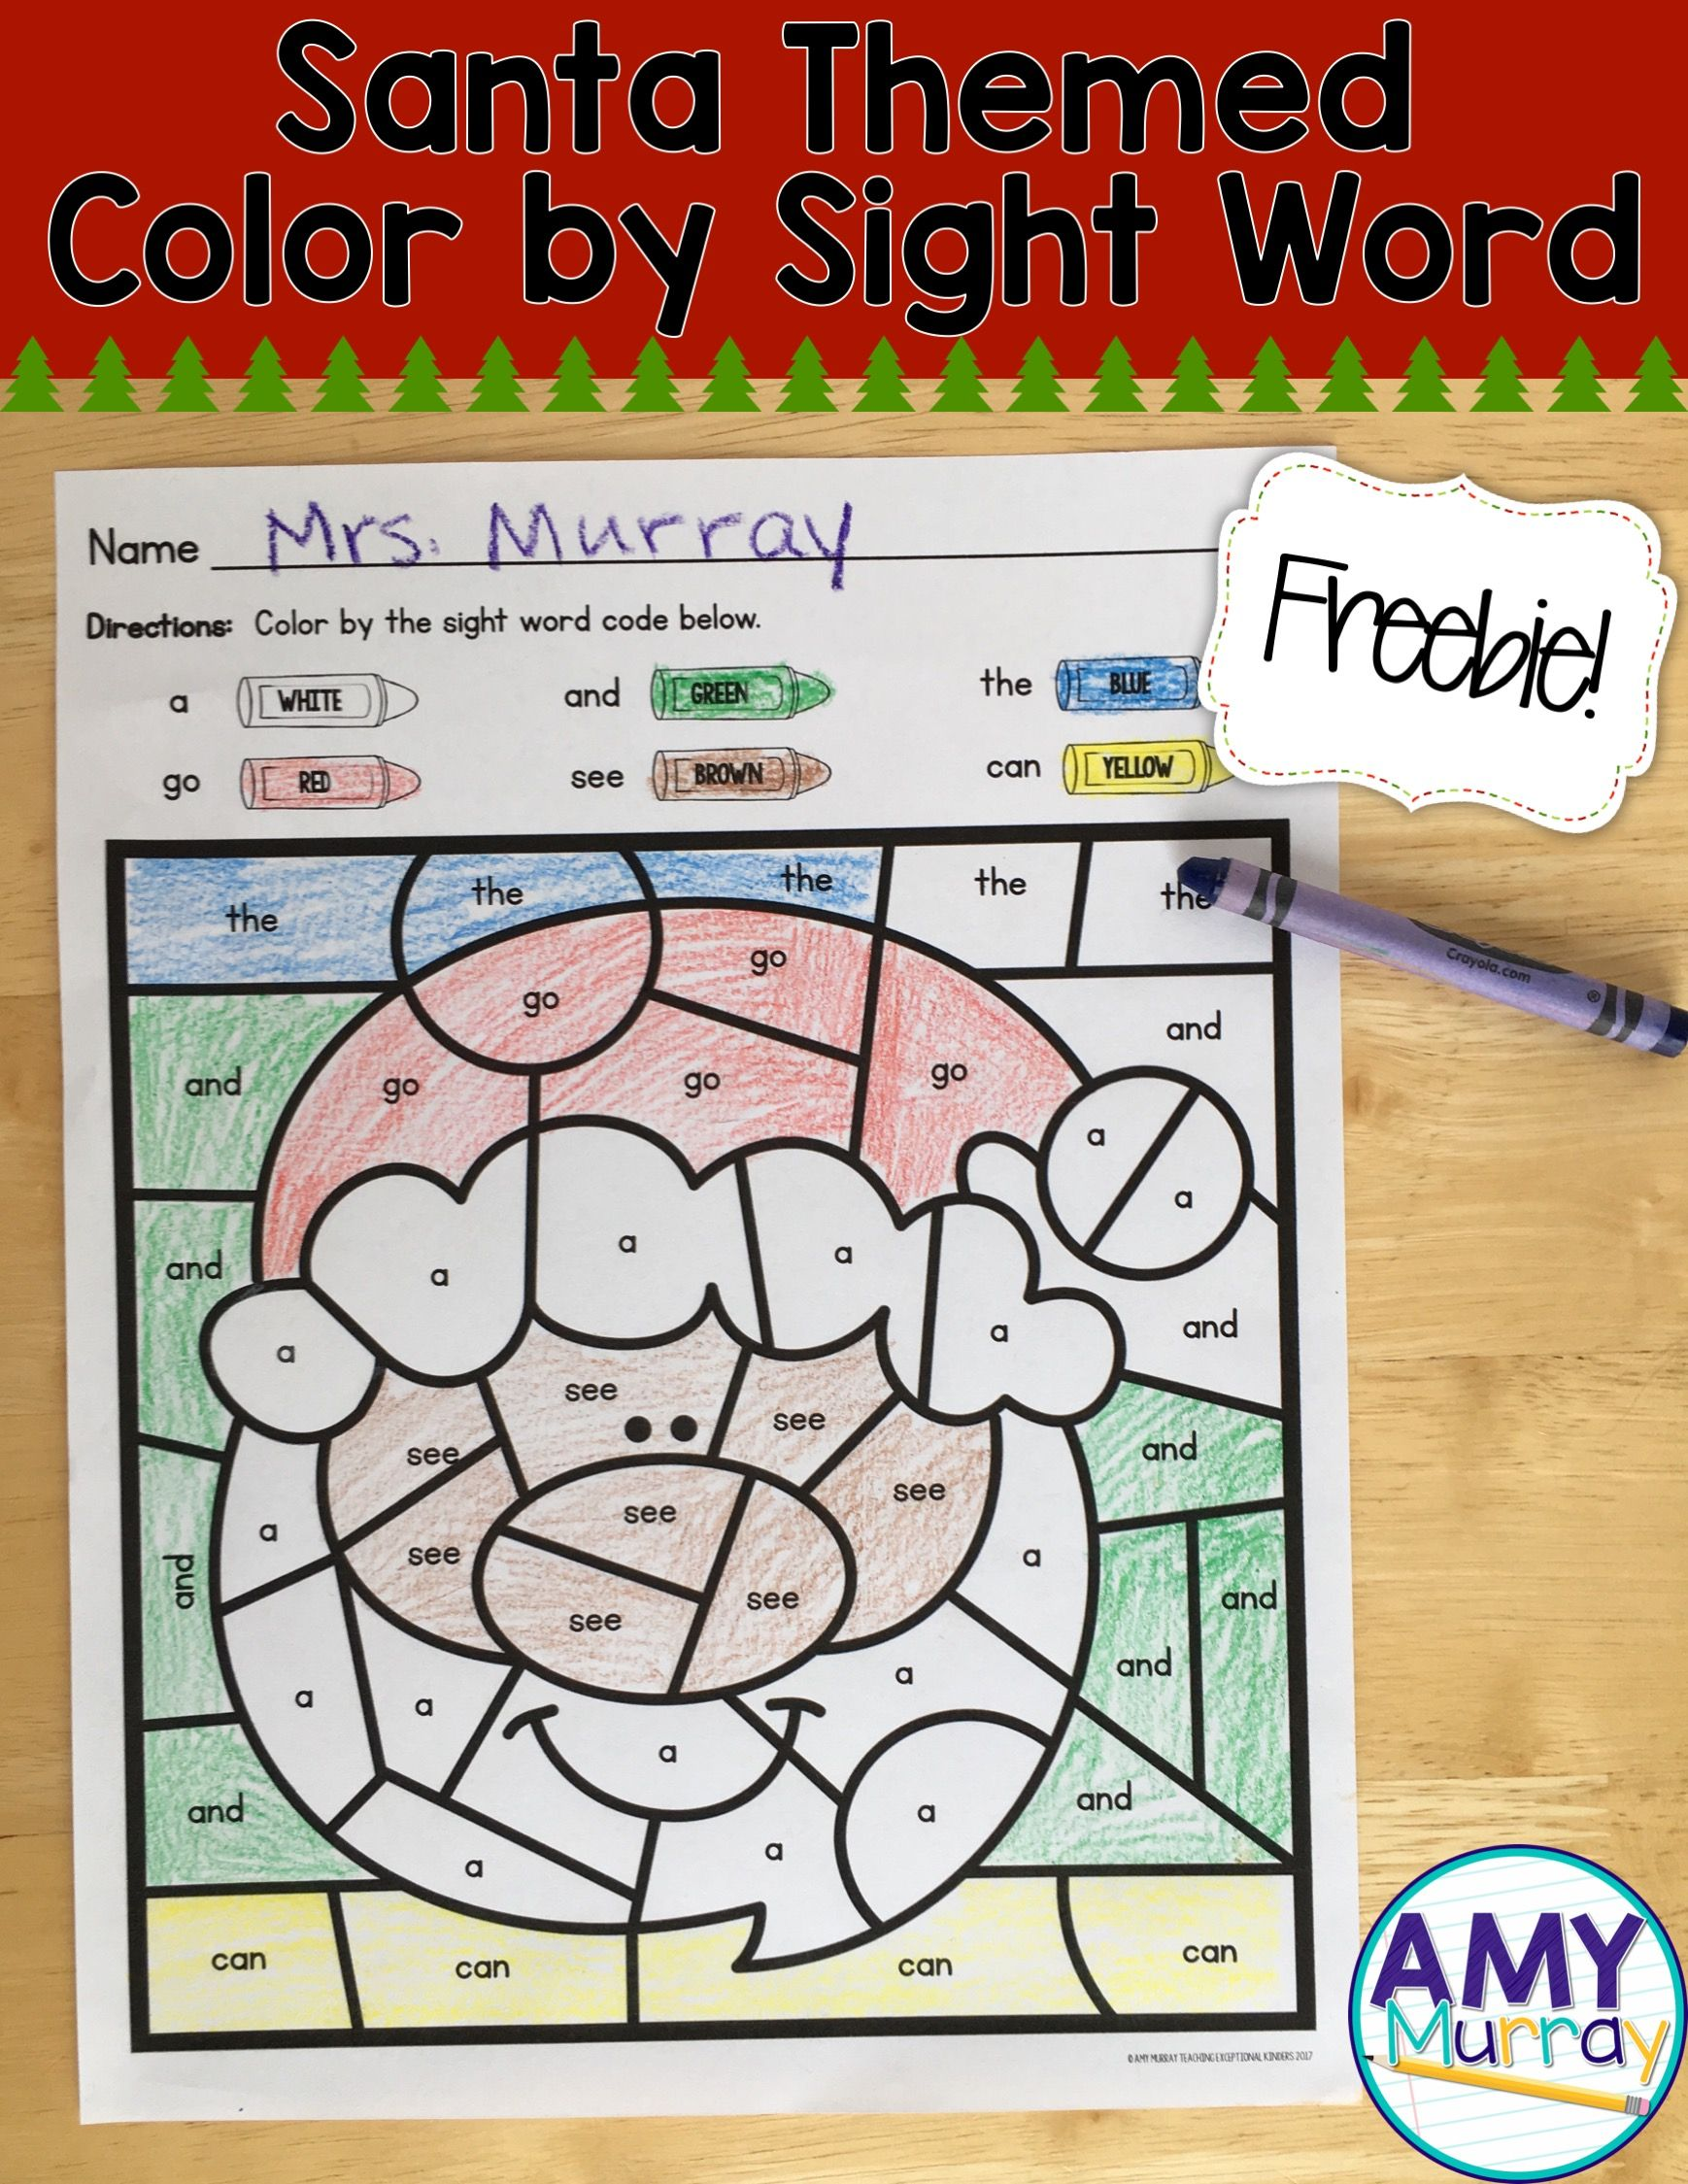 Free Christmas Themed Color By The Code Sight Words Ideas For Teaching